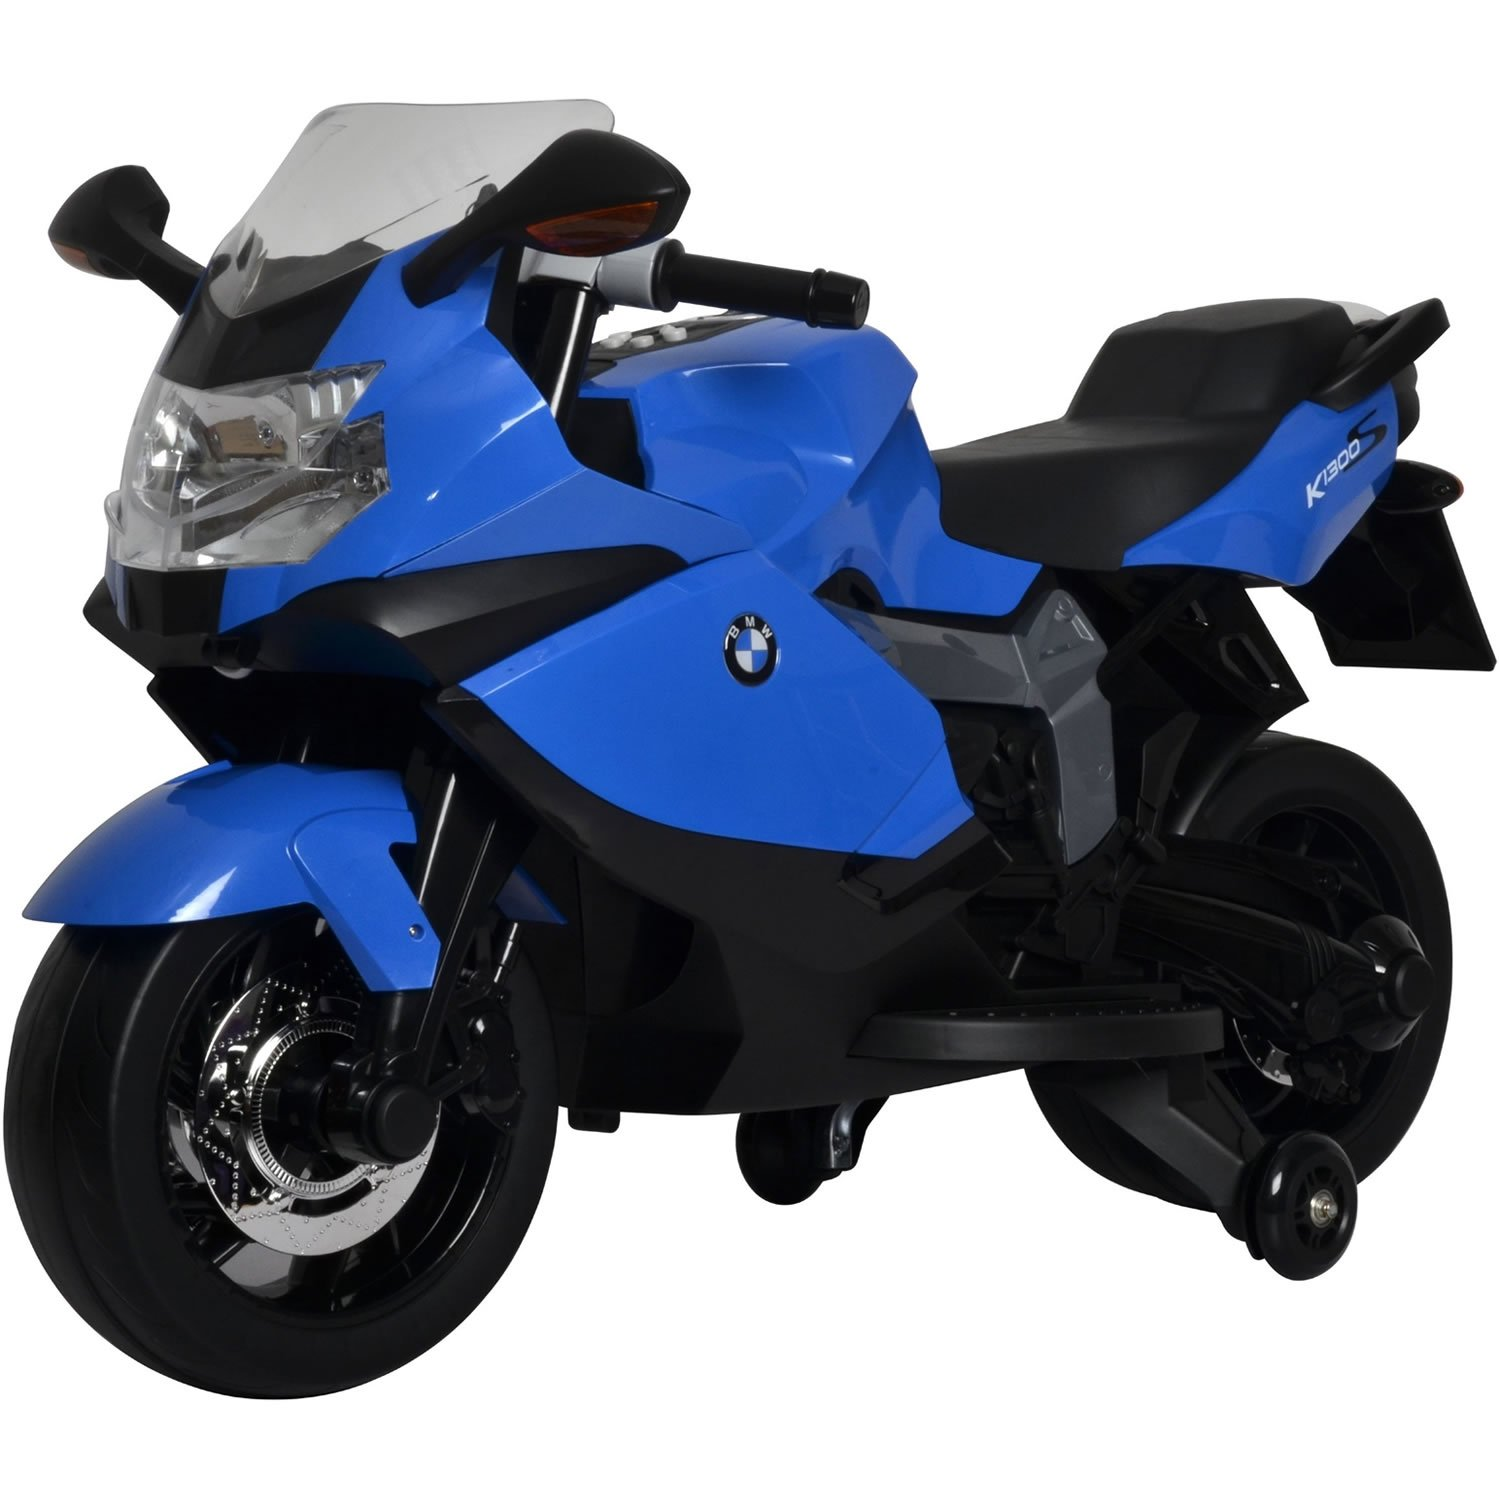 xxl item abu lb dhabi uae bike bmw dubai rechargeable blue